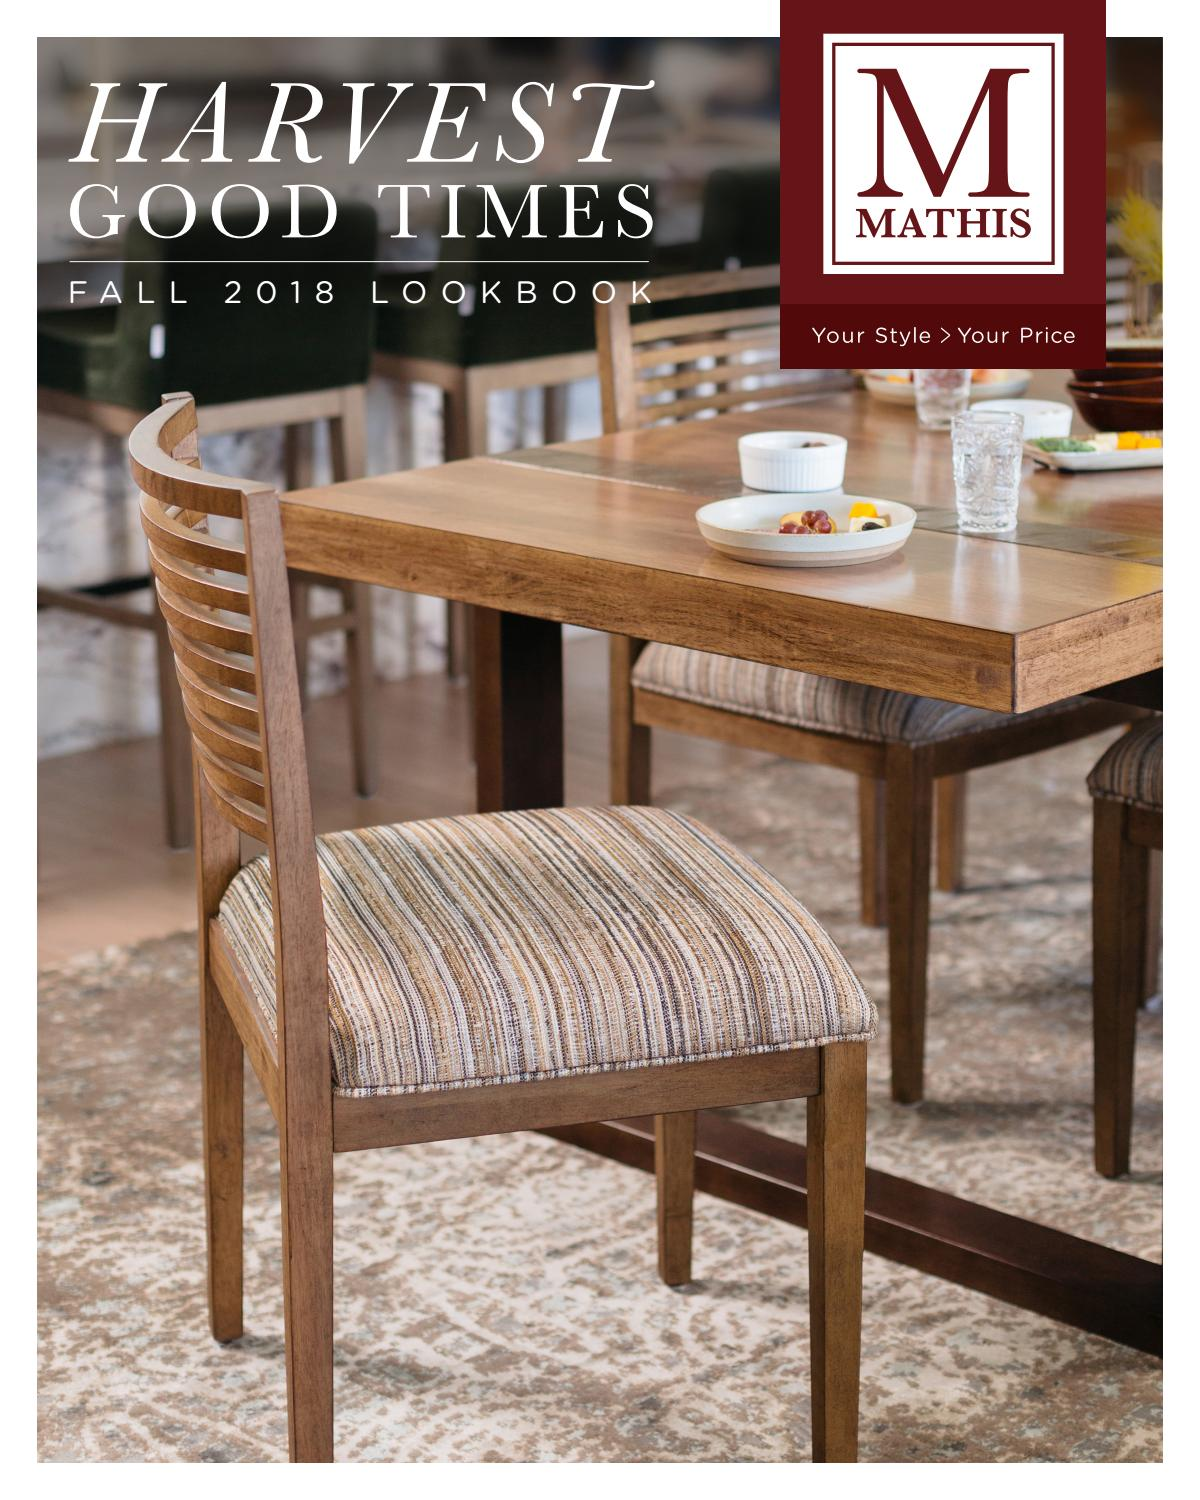 Astounding Mathis Brothers 2018 Fall Lookbook By Mathis Brothers Unemploymentrelief Wooden Chair Designs For Living Room Unemploymentrelieforg